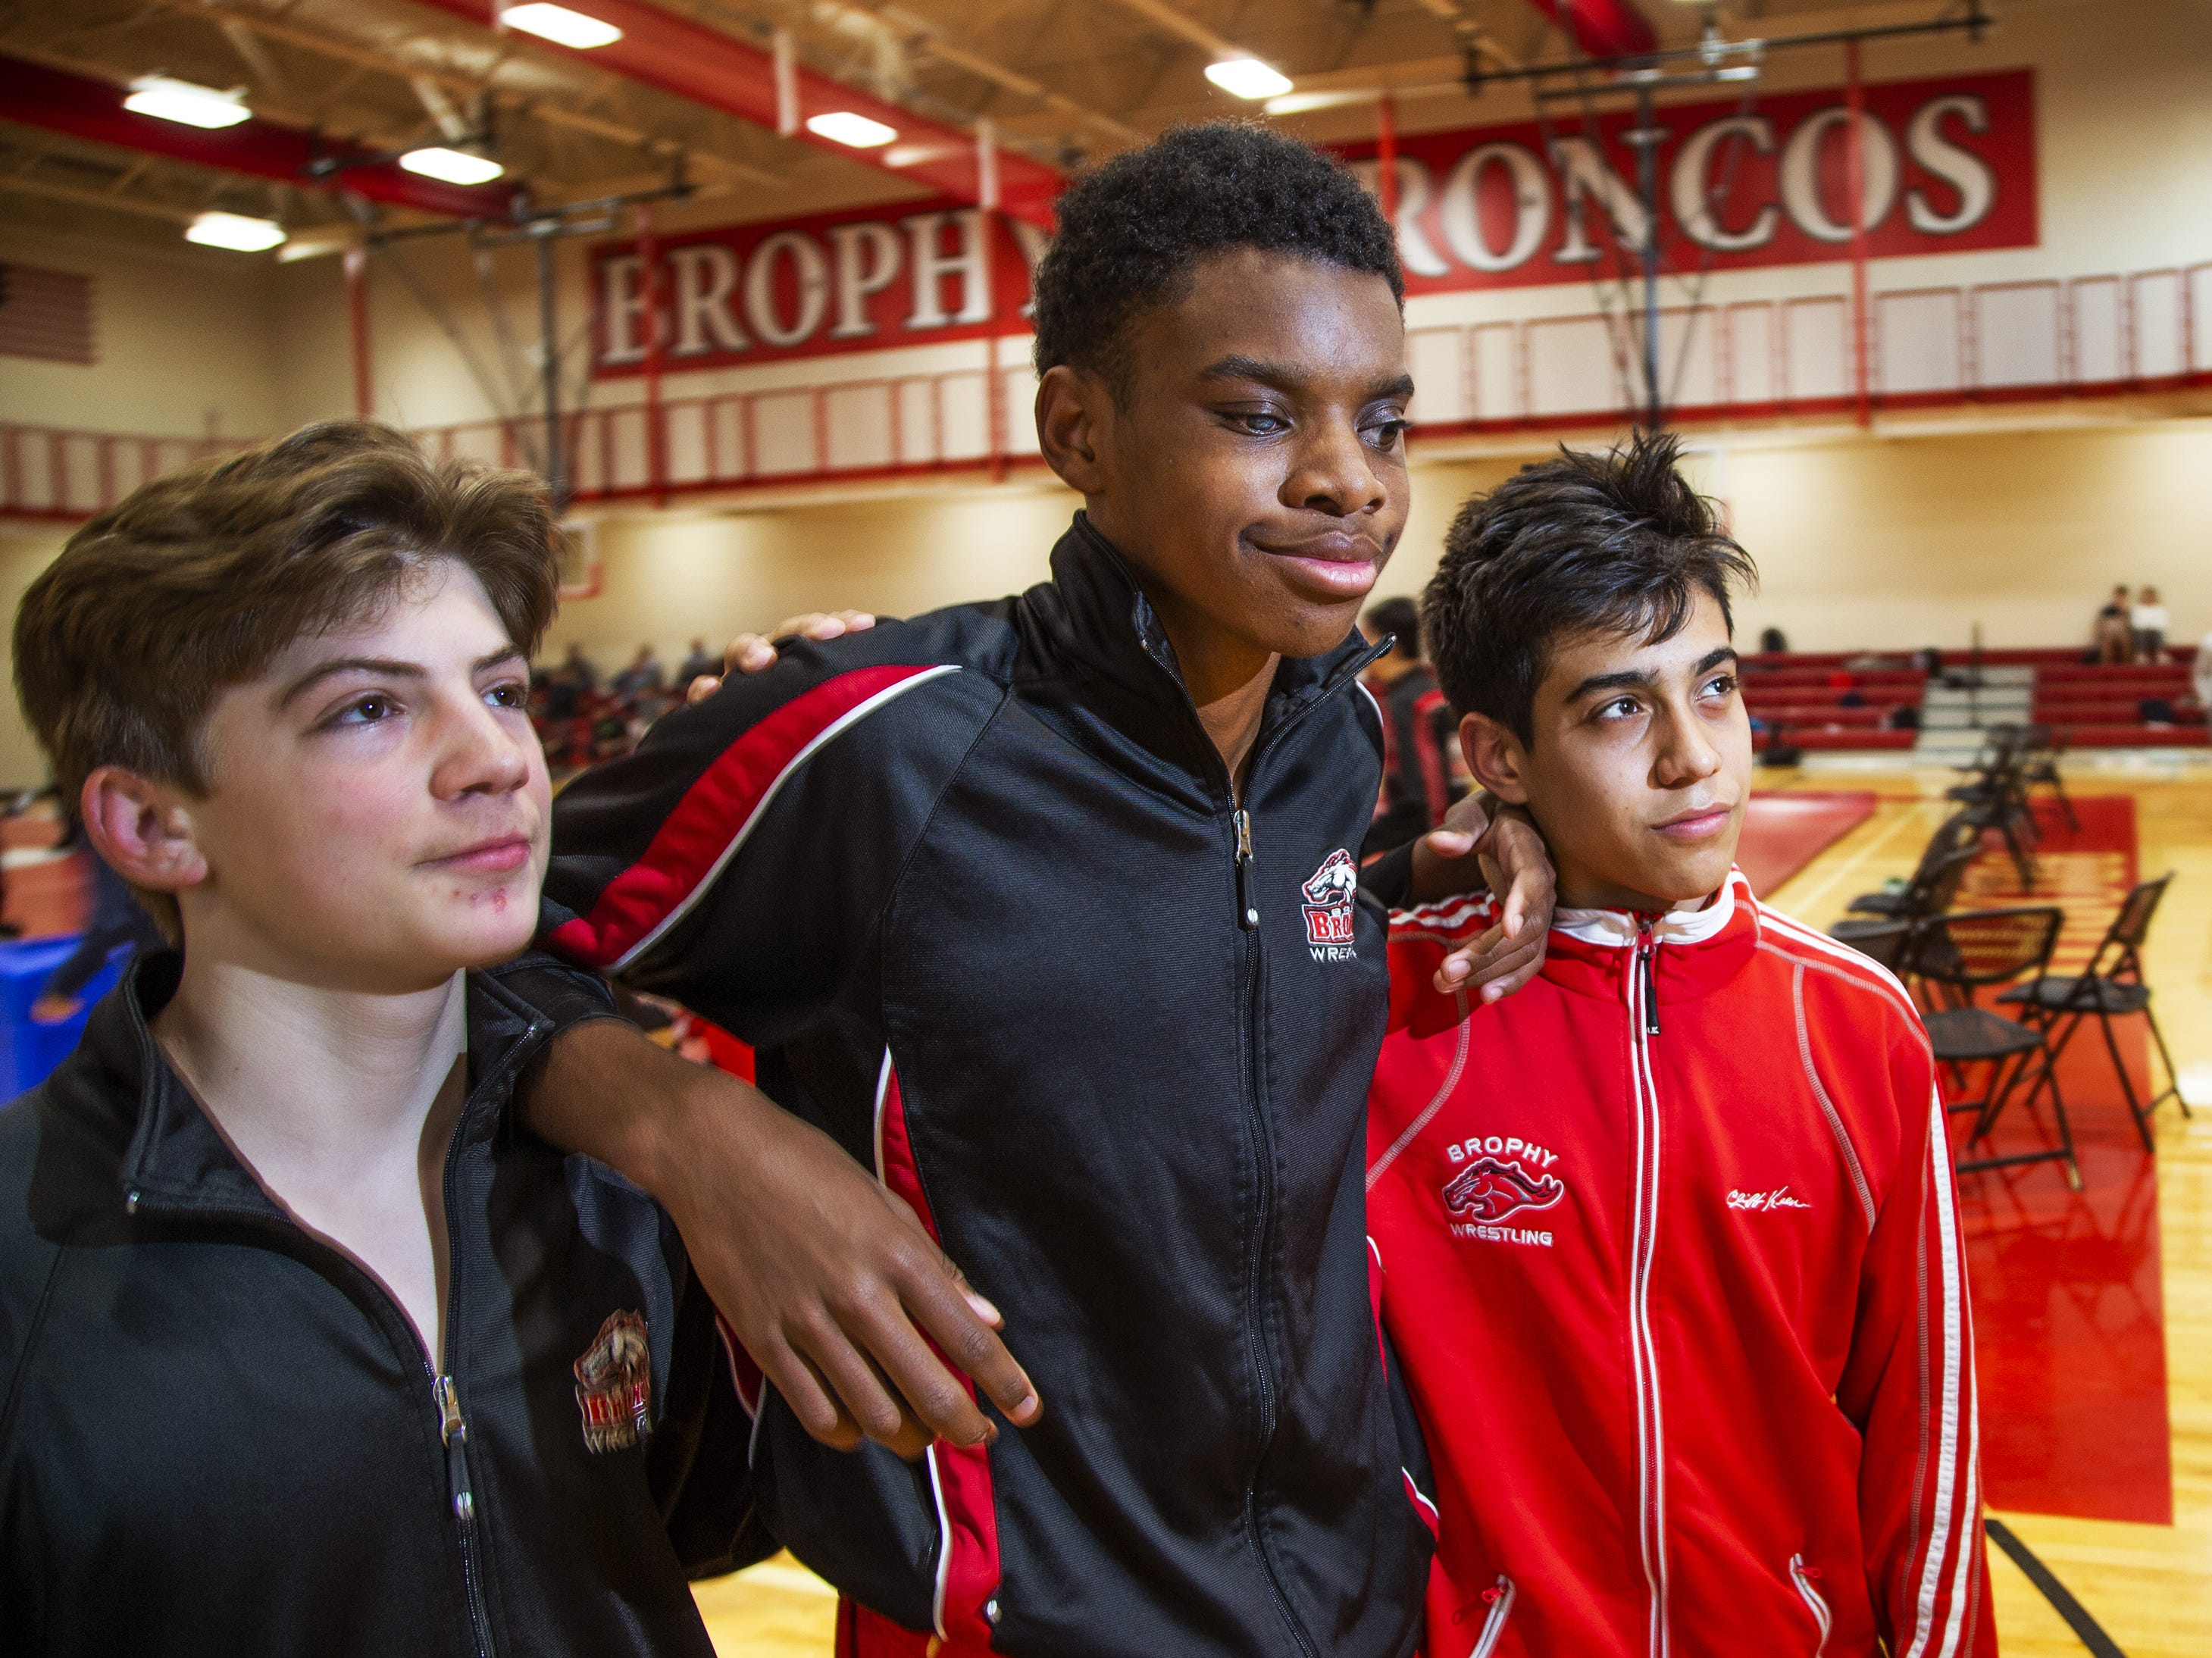 Adonis Watt, middle, is a blind wrestler for Brophy College Preparatory high school in Phoenix.  He hangs out with his teammates and friends, Grant Buccino, left, and Joseph Martinez, right, before his match at Brophy, Wednesday, January 23, 2019.